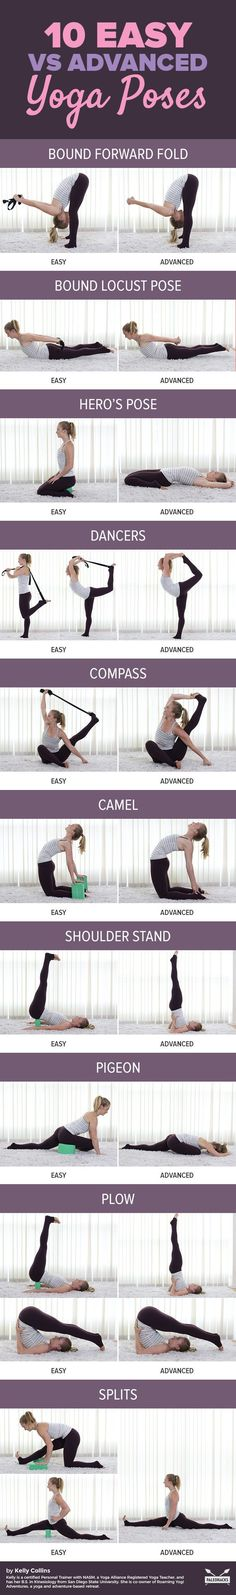 Whether you are new to yoga  or have years of experience under your belt, there is always room for  growth. Watching your flexibility and strength increase is an amazing  benefit of yoga that can keep you coming back for more, and these yoga  modifications will help you make the transition that much easier. read the full article here: http://paleo.co/yogamodifications